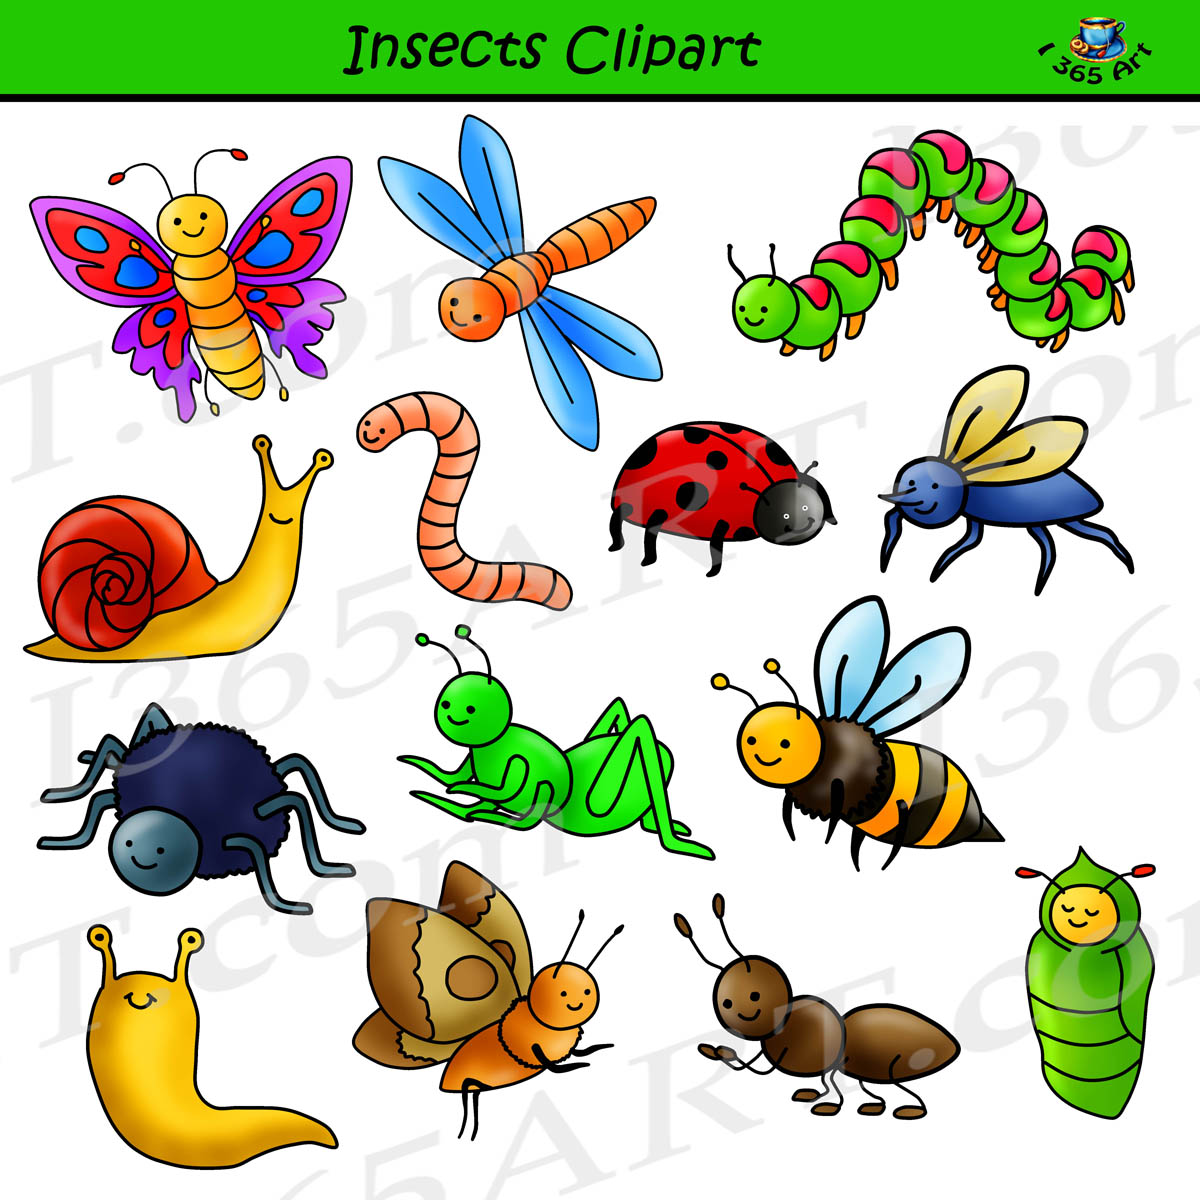 insect clipart set commercial use graphics clipart 4 school rh clipart4school com clipart insect insects clipart png